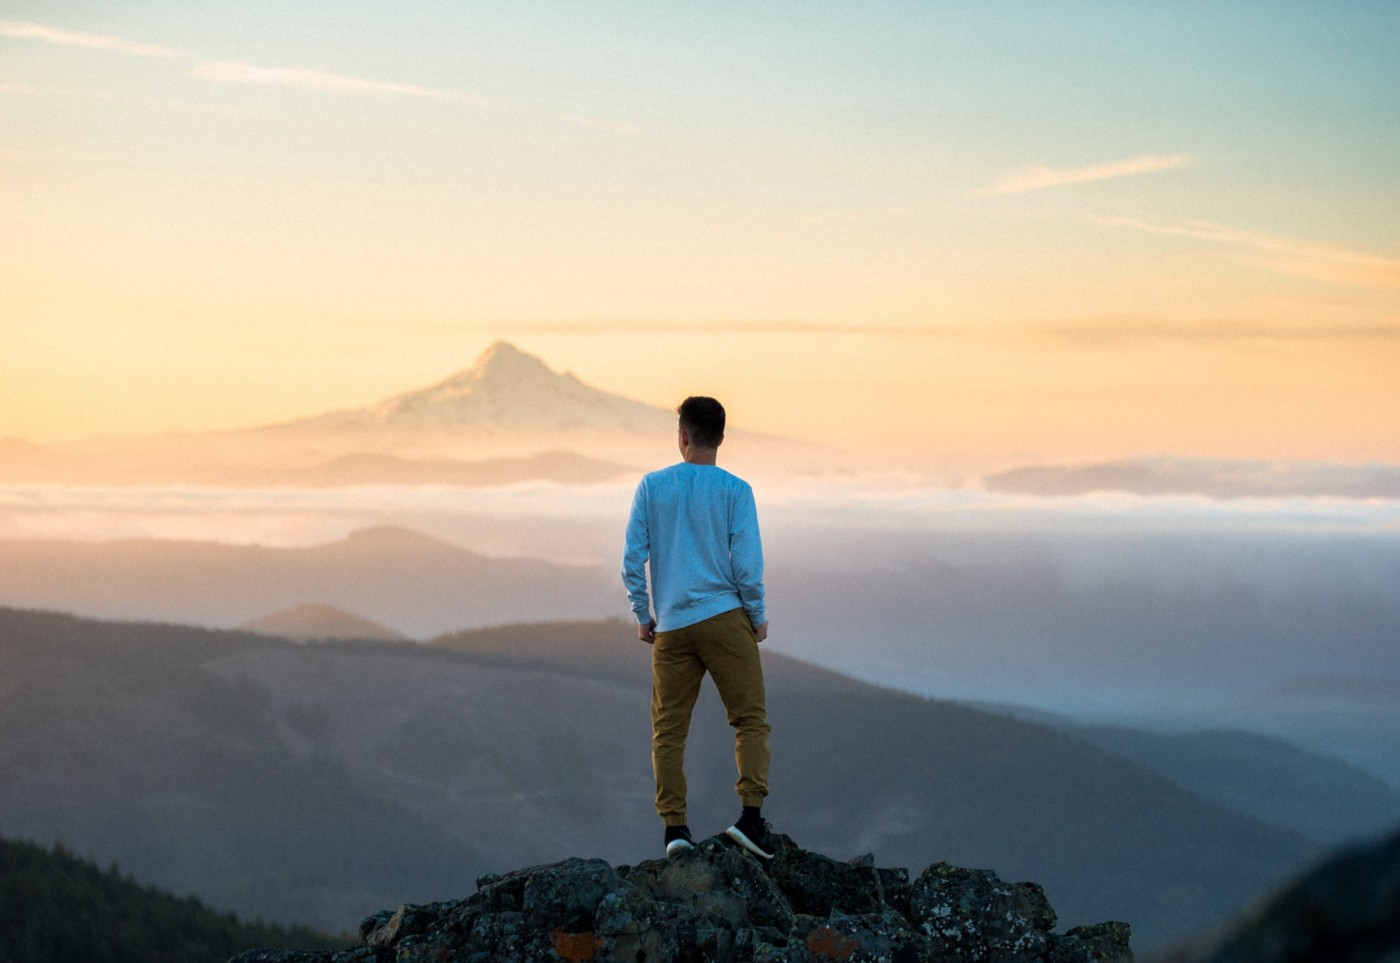 A person standing on a mountain at sunset.